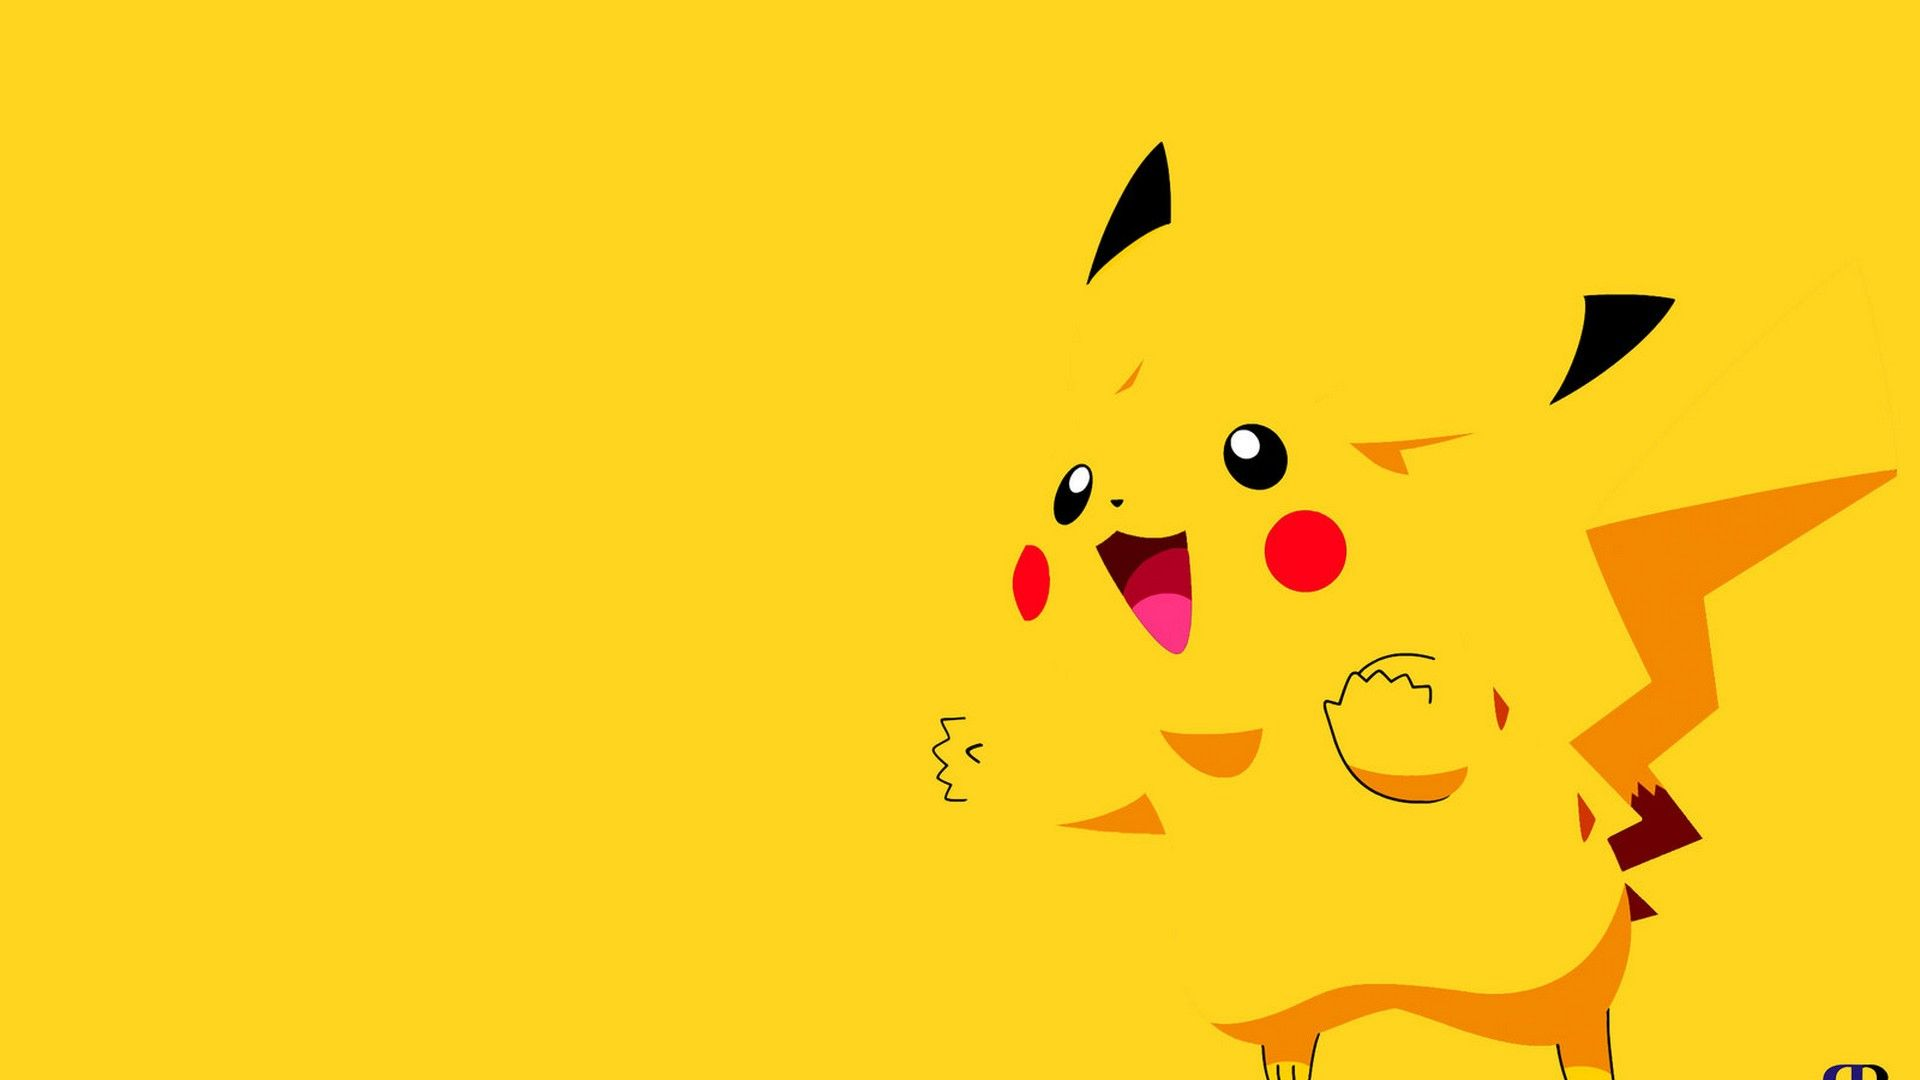 Yellow Cute Desktop Backgrounds Hd Best Wallpaper Hd Cute Desktop Wallpaper Cute Love Wallpapers Cute Wallpapers Quotes